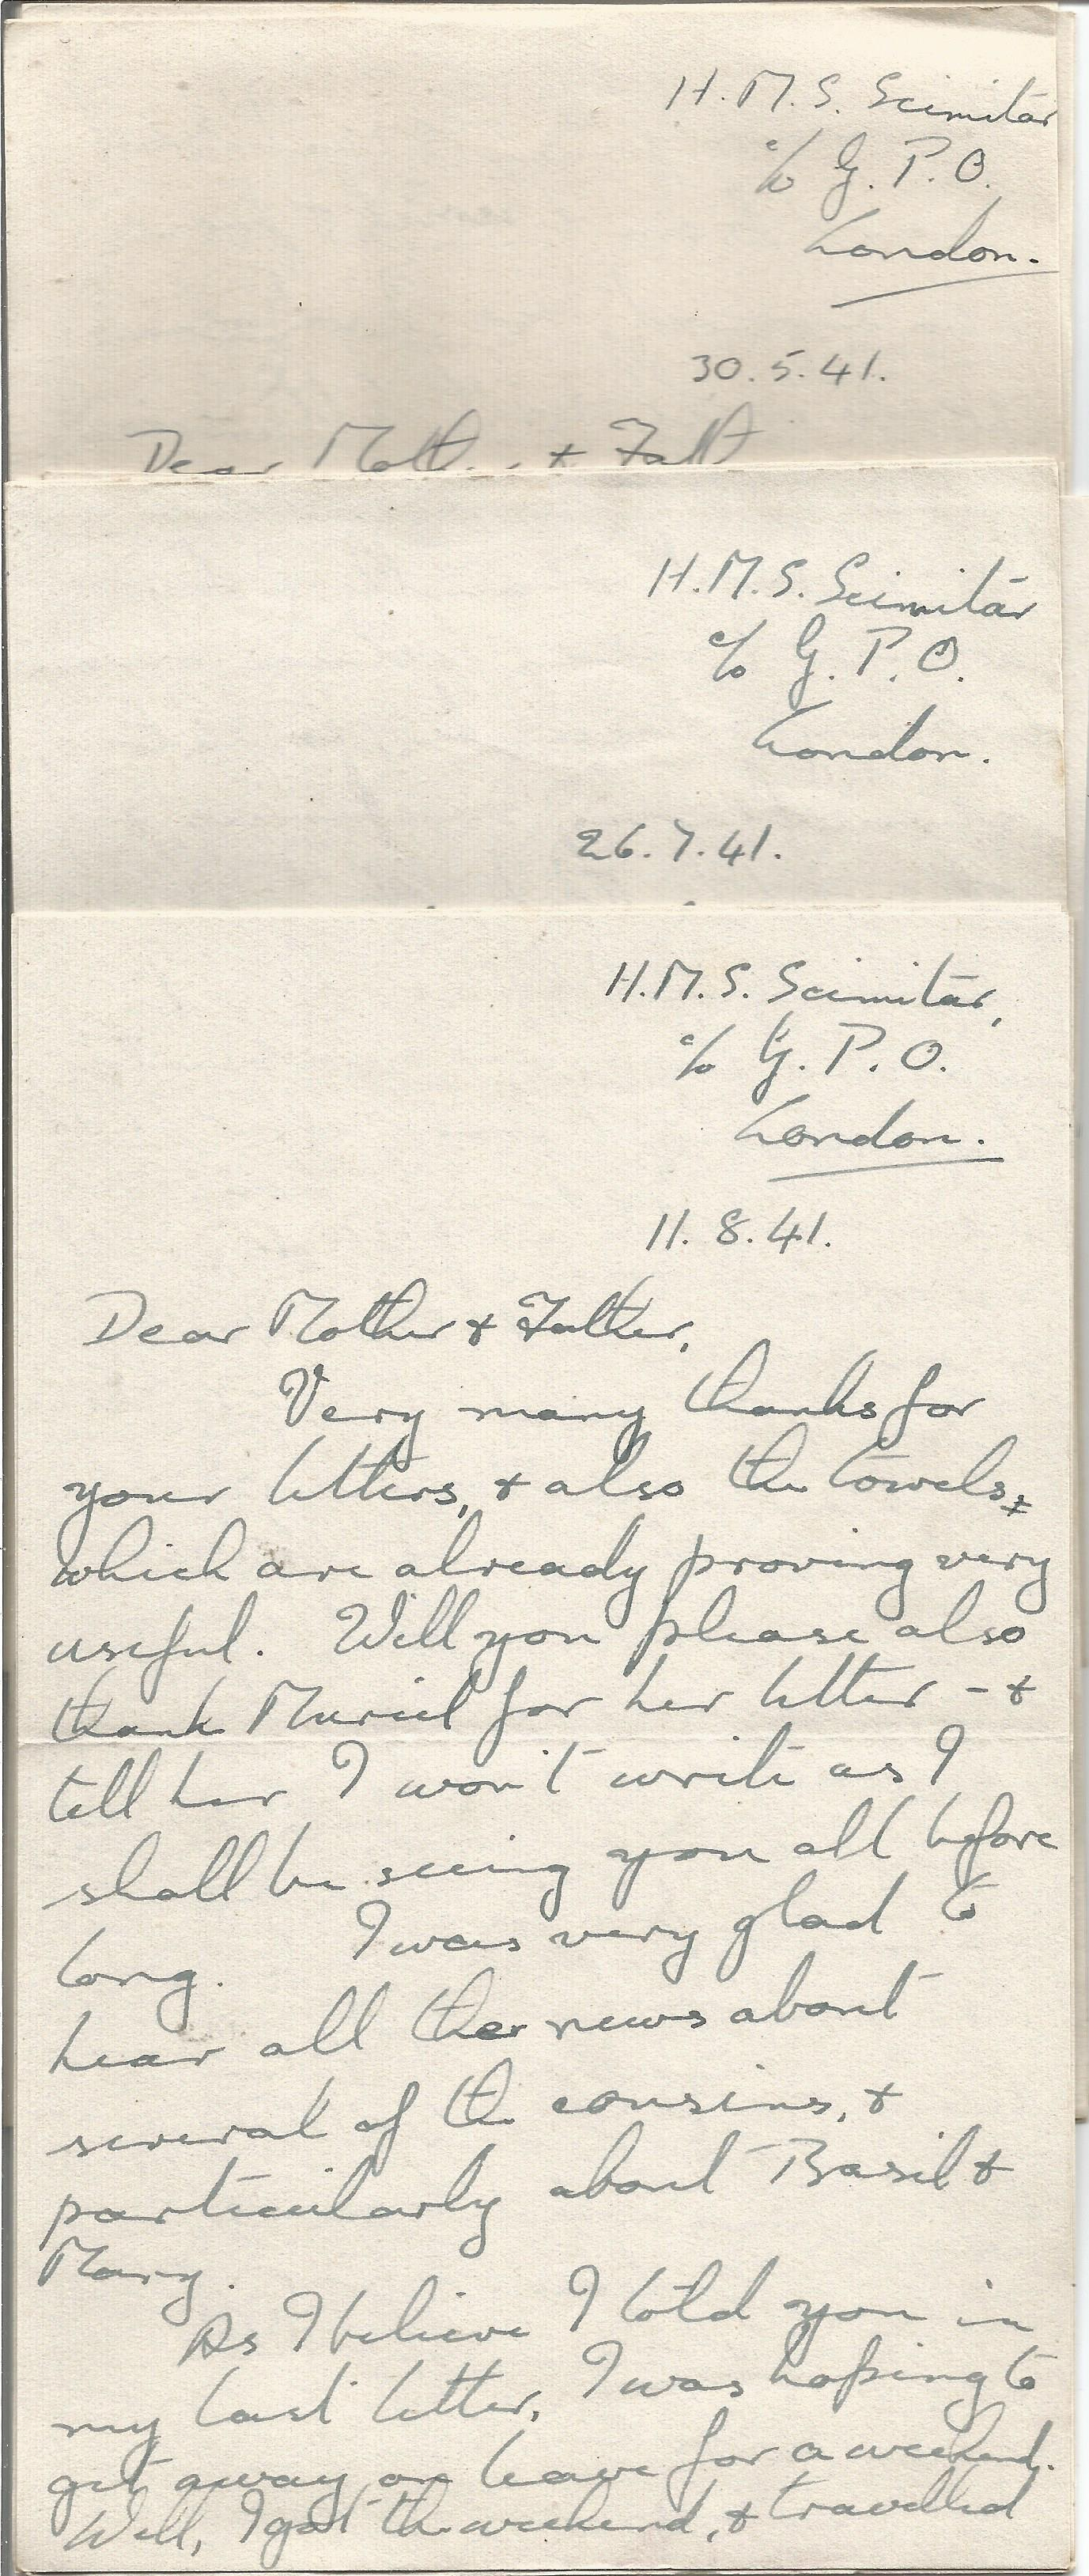 Wartime Correspondence Collection from a crew member of H. M. S. Scimitar plus other WW2 letters,